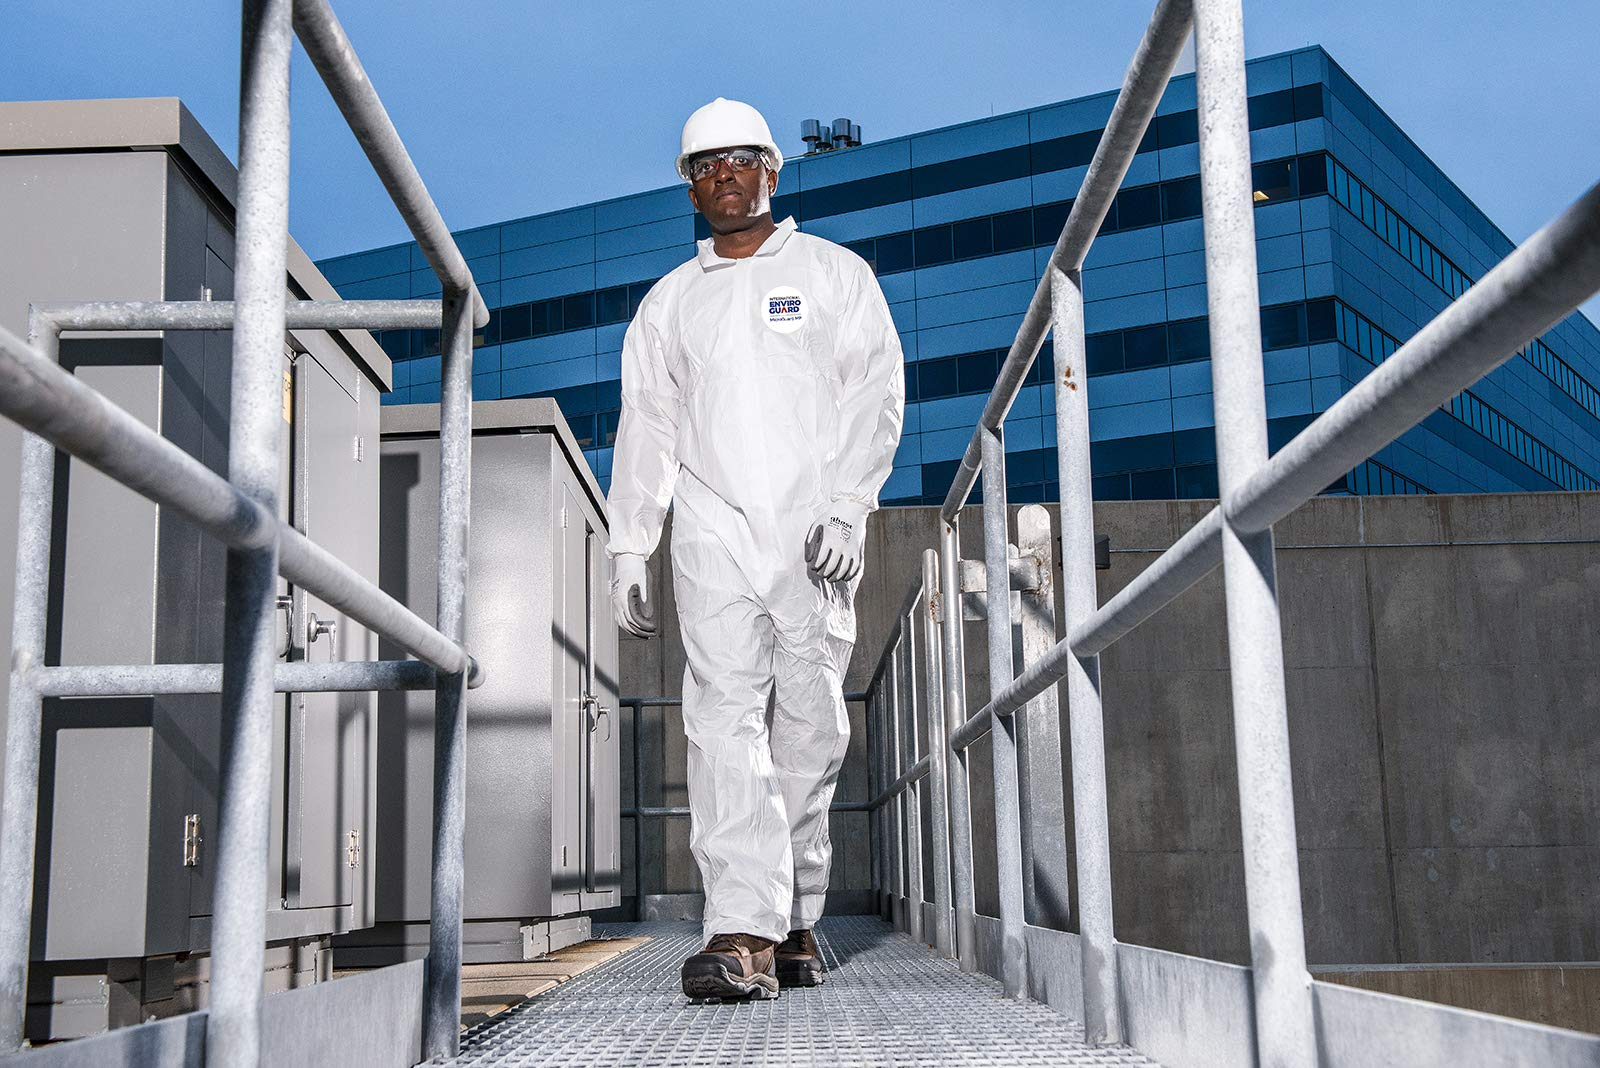 Microguard MP Microporous (White) | Particulate & Splash Protection/Disposable Hazmat Coverall with Elastic Wrist & Ankle for Paint and Particulates (XL, Case of 25) by Microguard MP (Image #9)